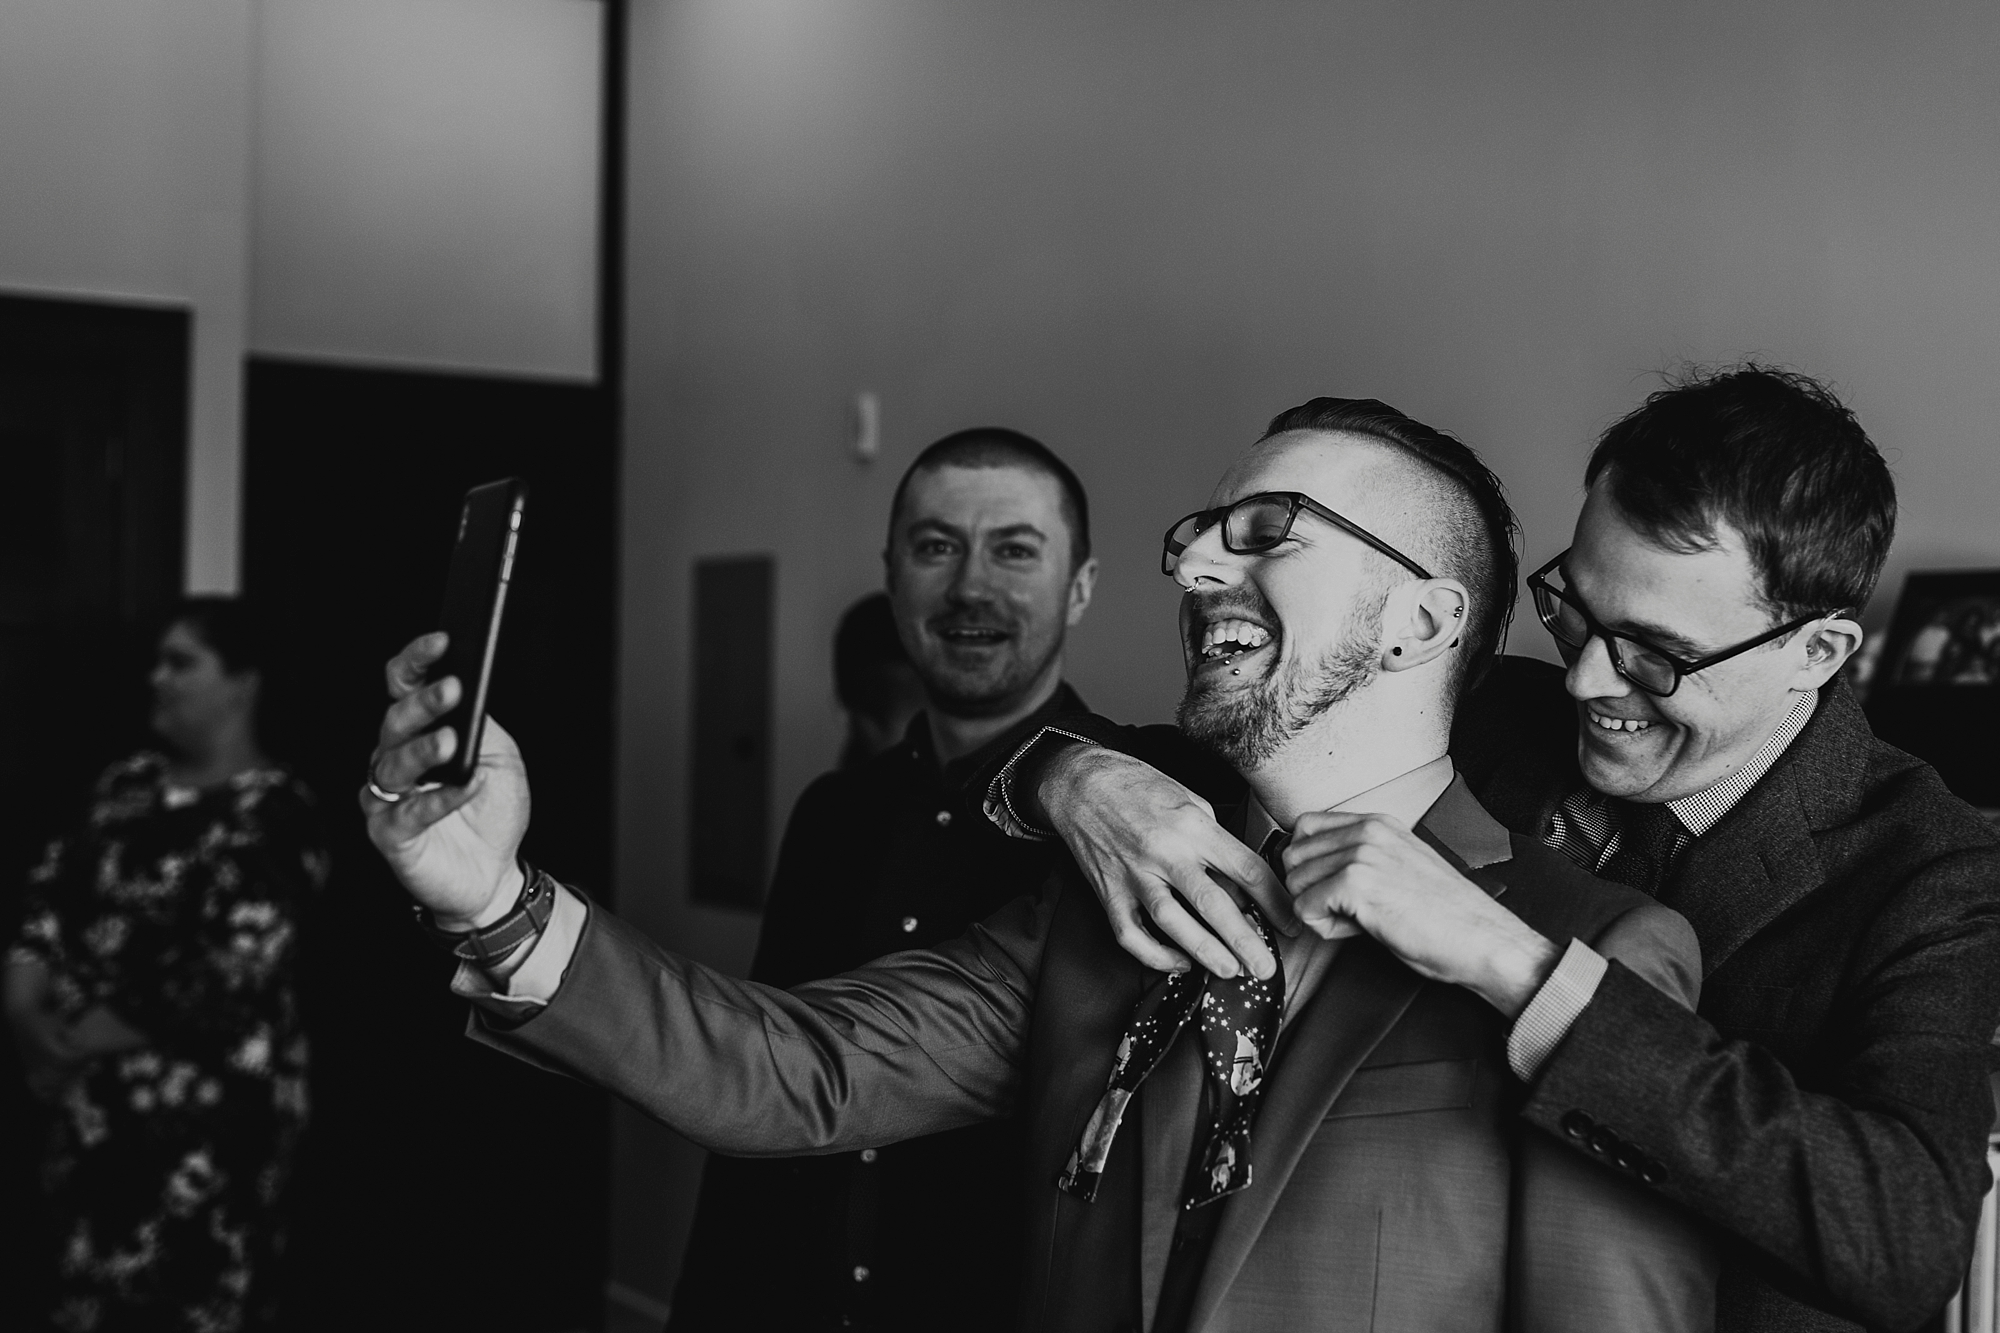 Joe_Mac_Creative_Philadelphia_Philly_LGBT_Gay_Engagement_Wedding_Photography__0046.jpg